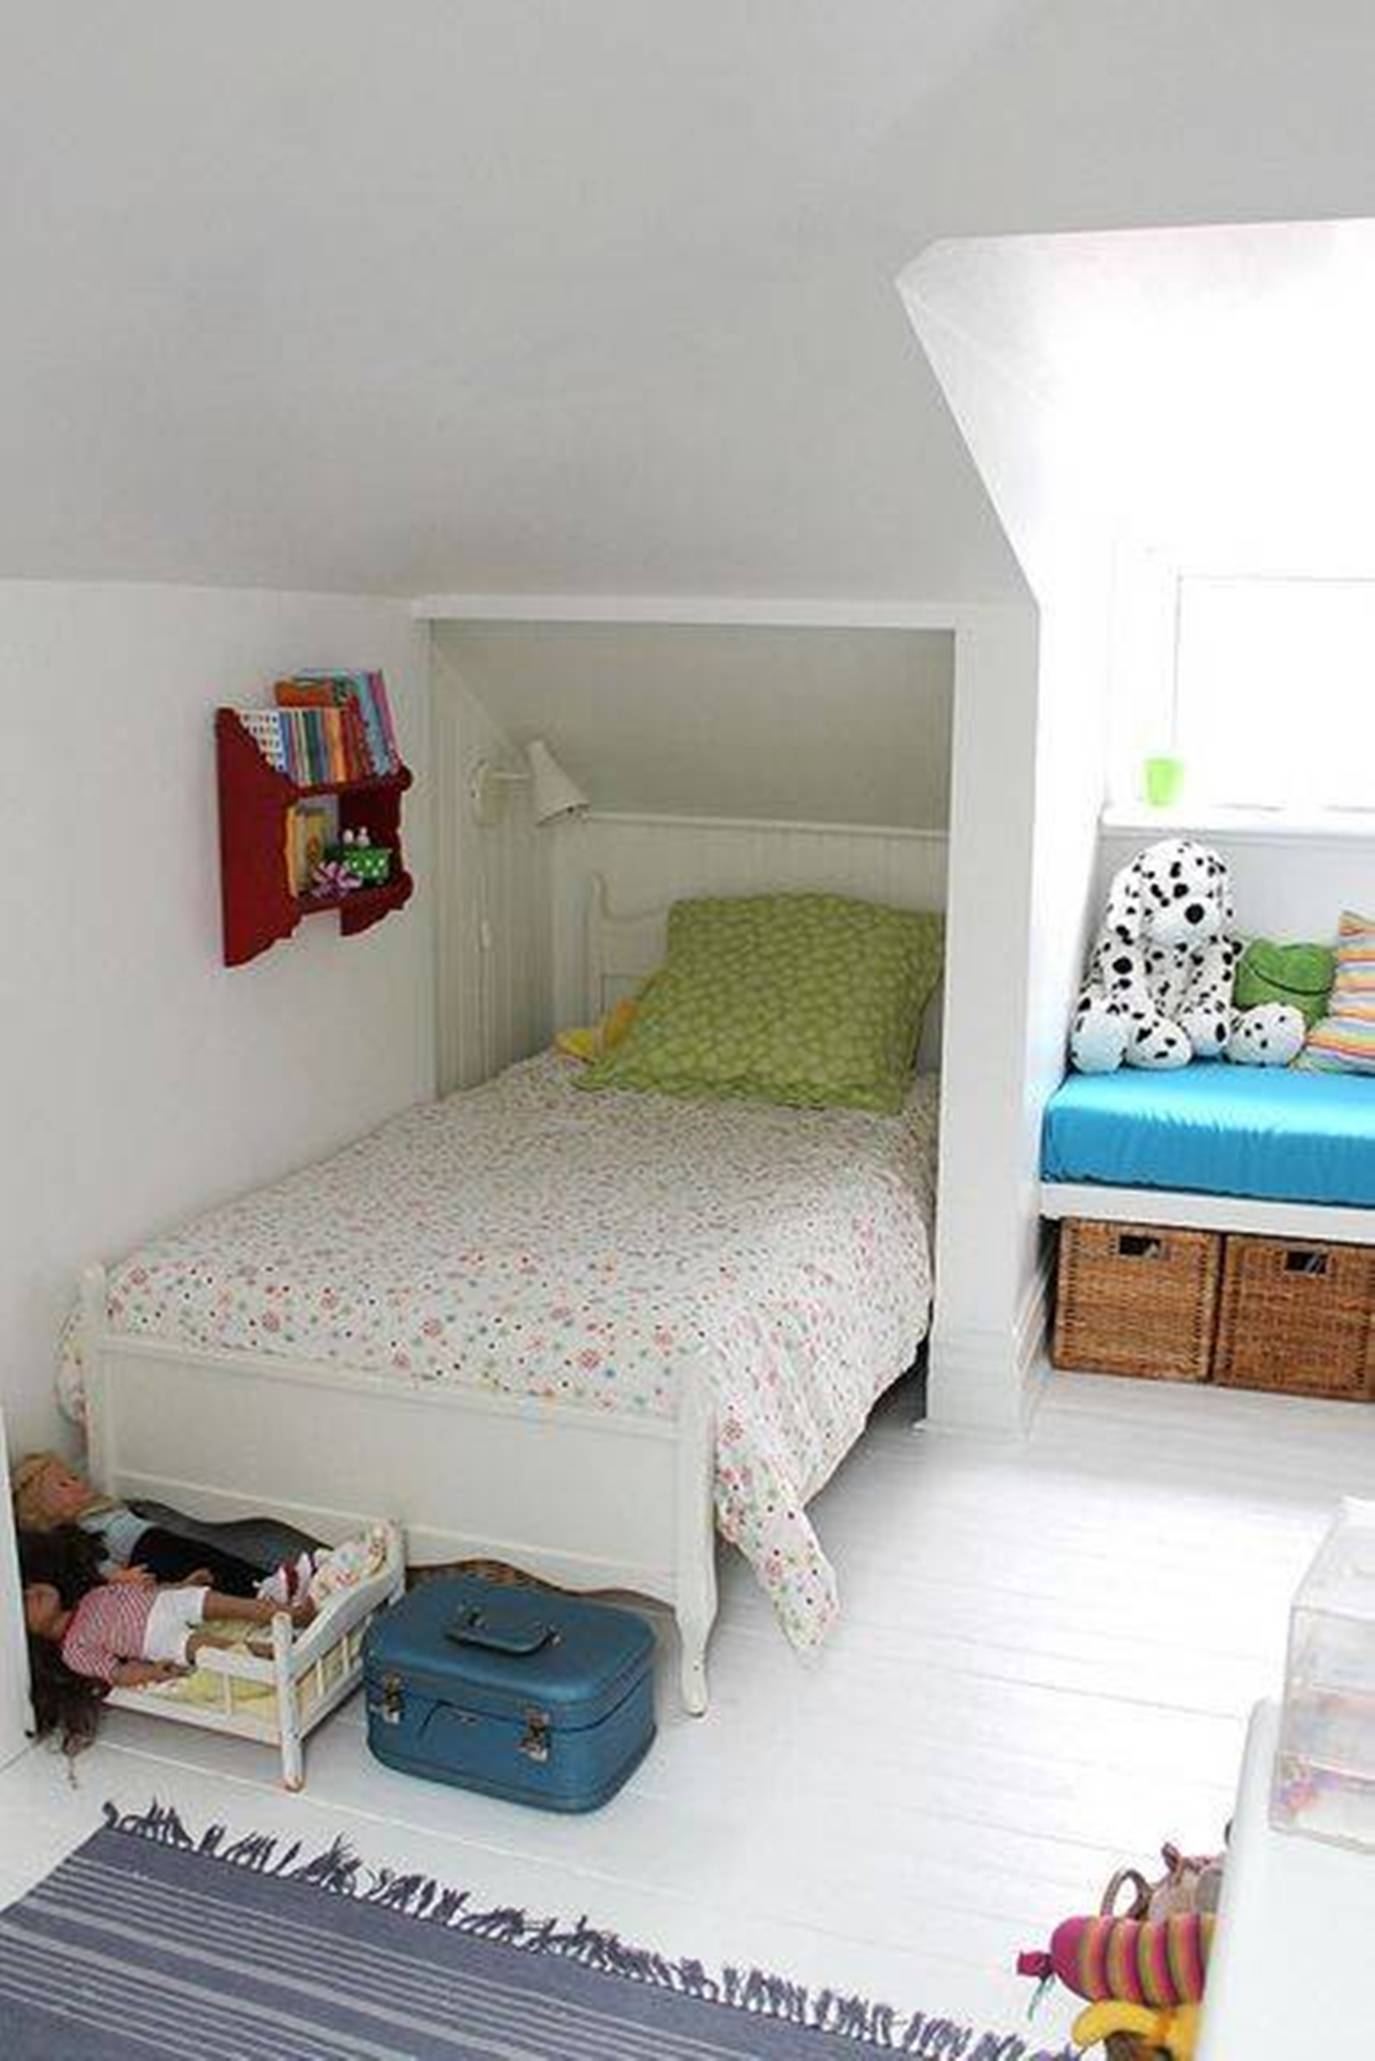 Adorable designs for an attic space An attic room